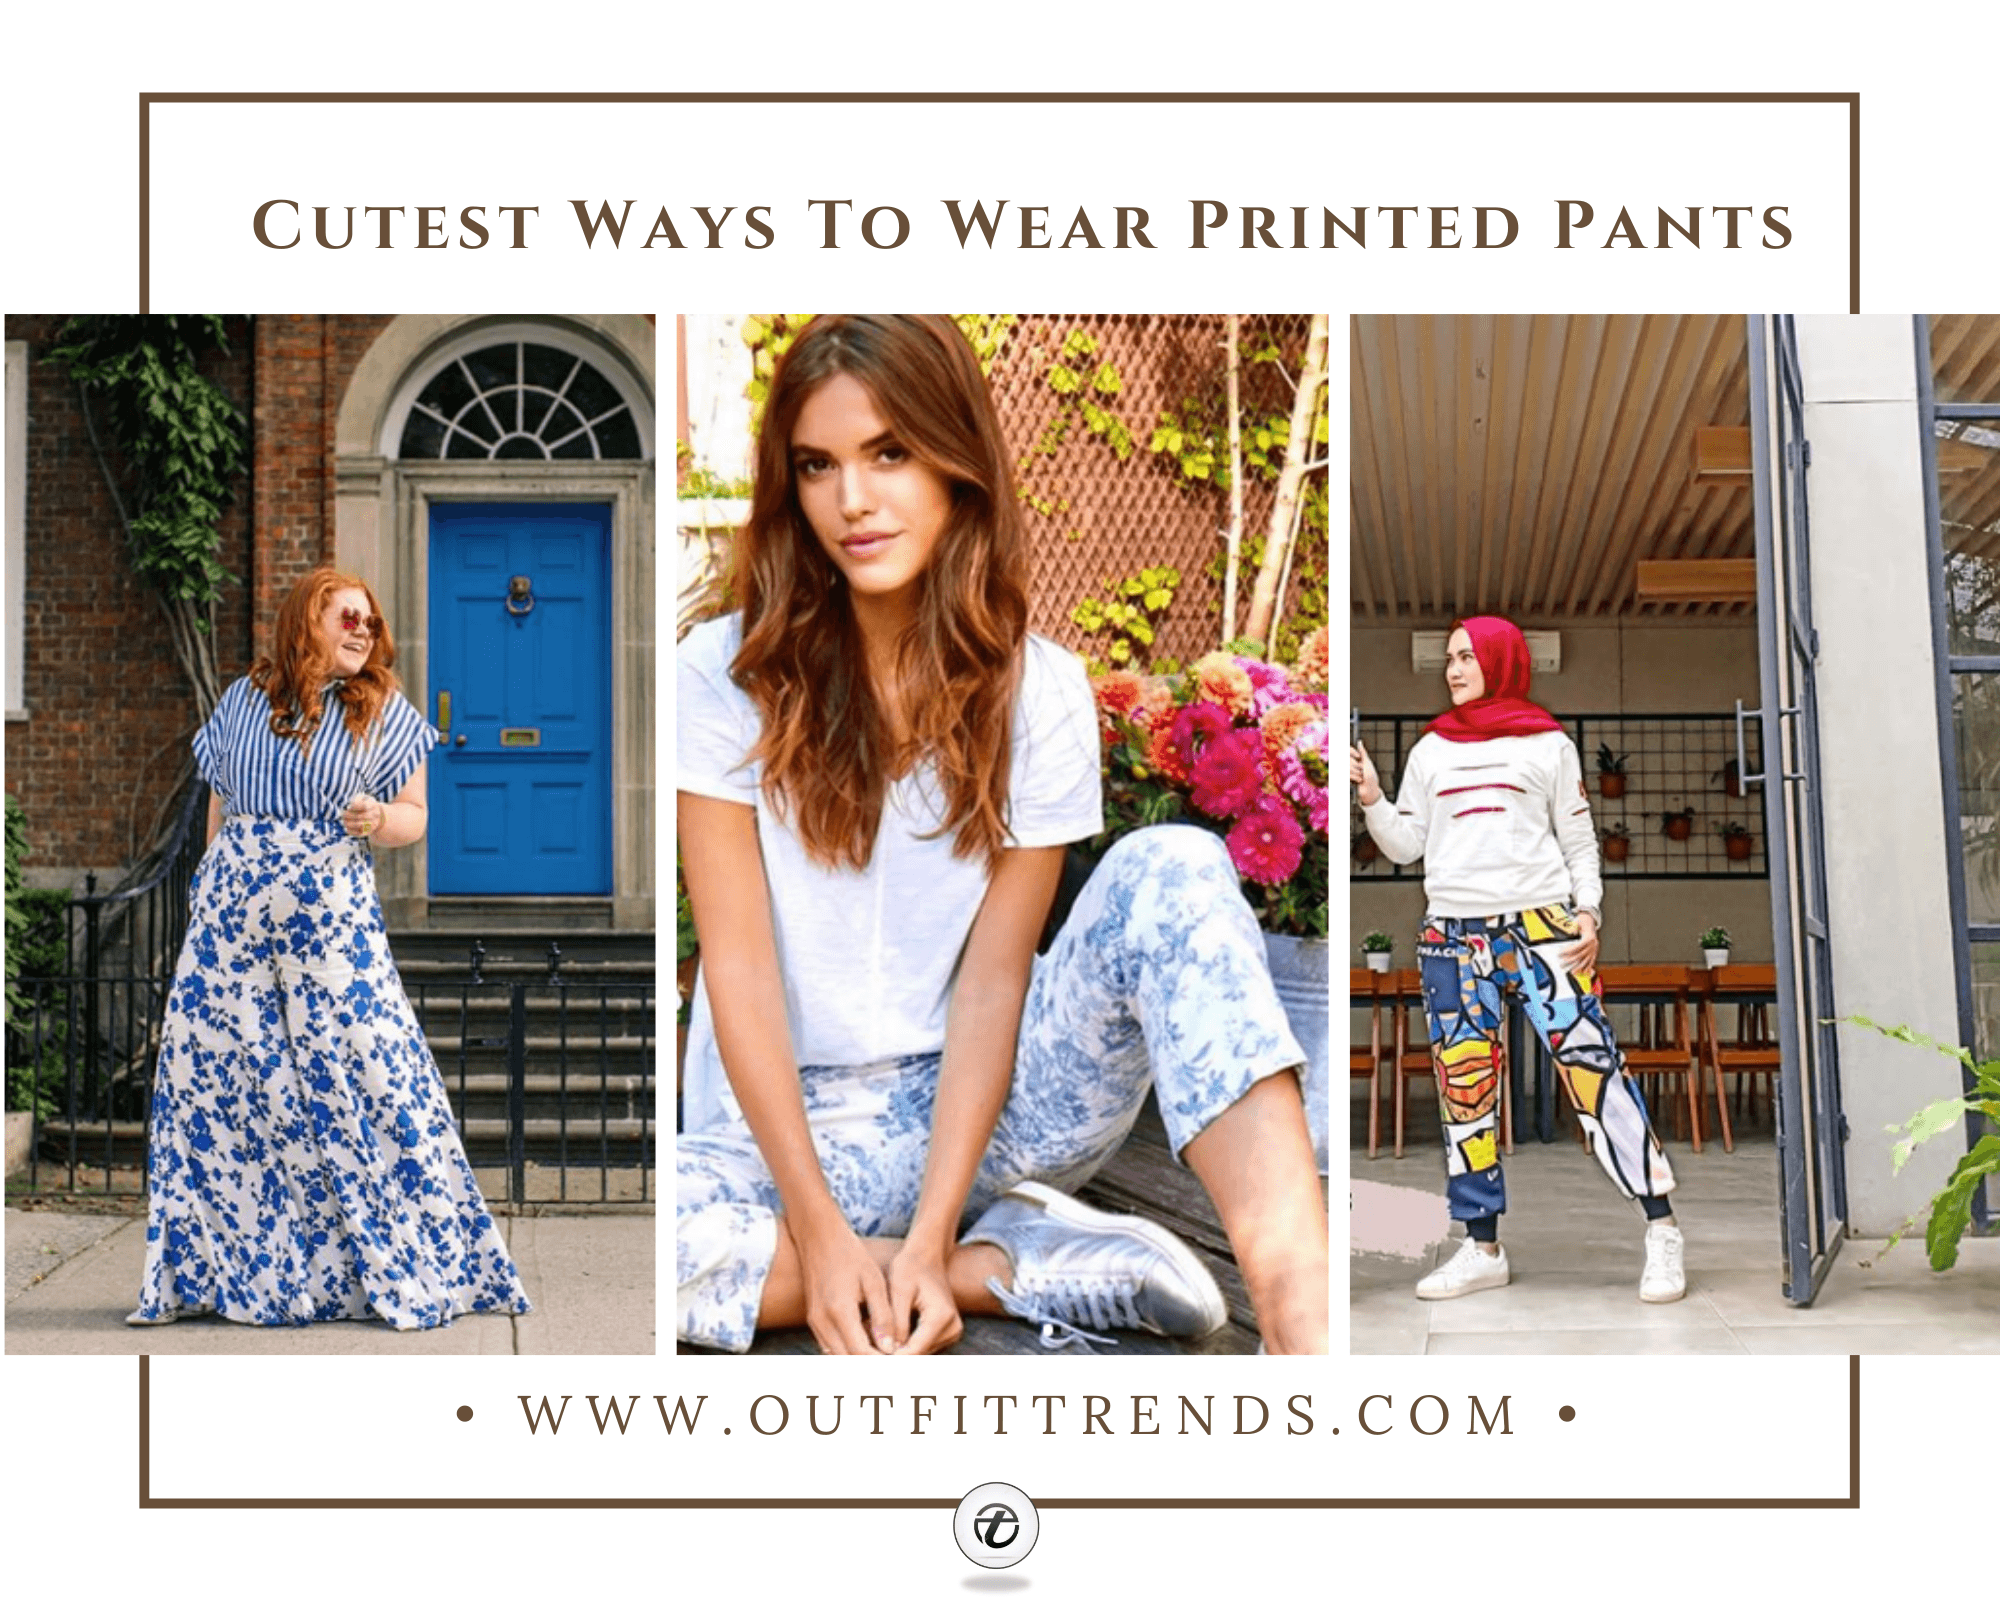 Printed Pants Outfits 23 Ideas On How To Wear Printed Pants